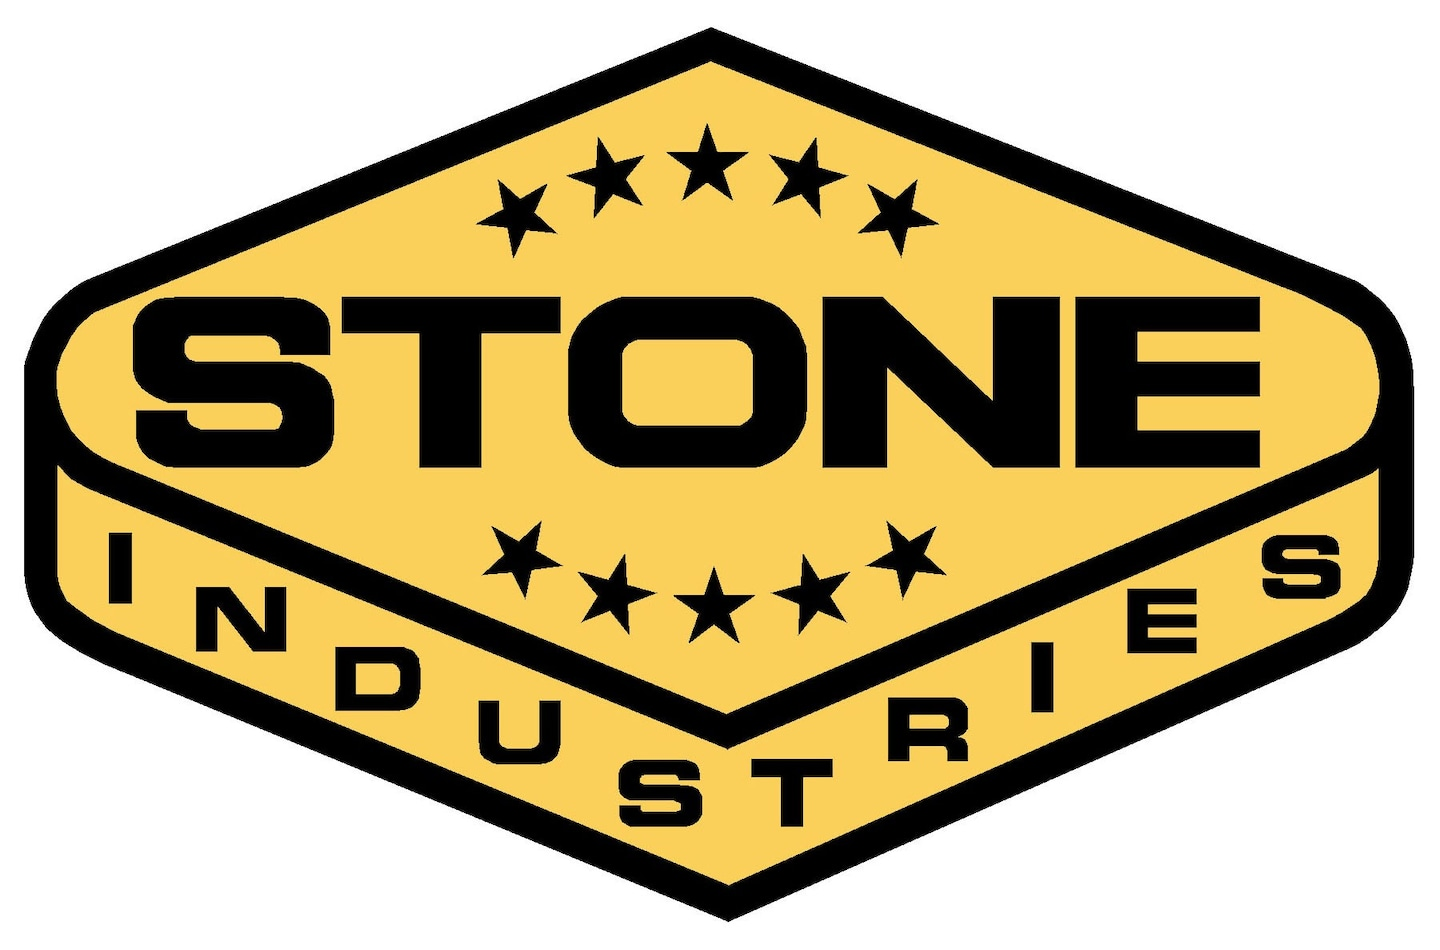 STONE INDUSTRIES